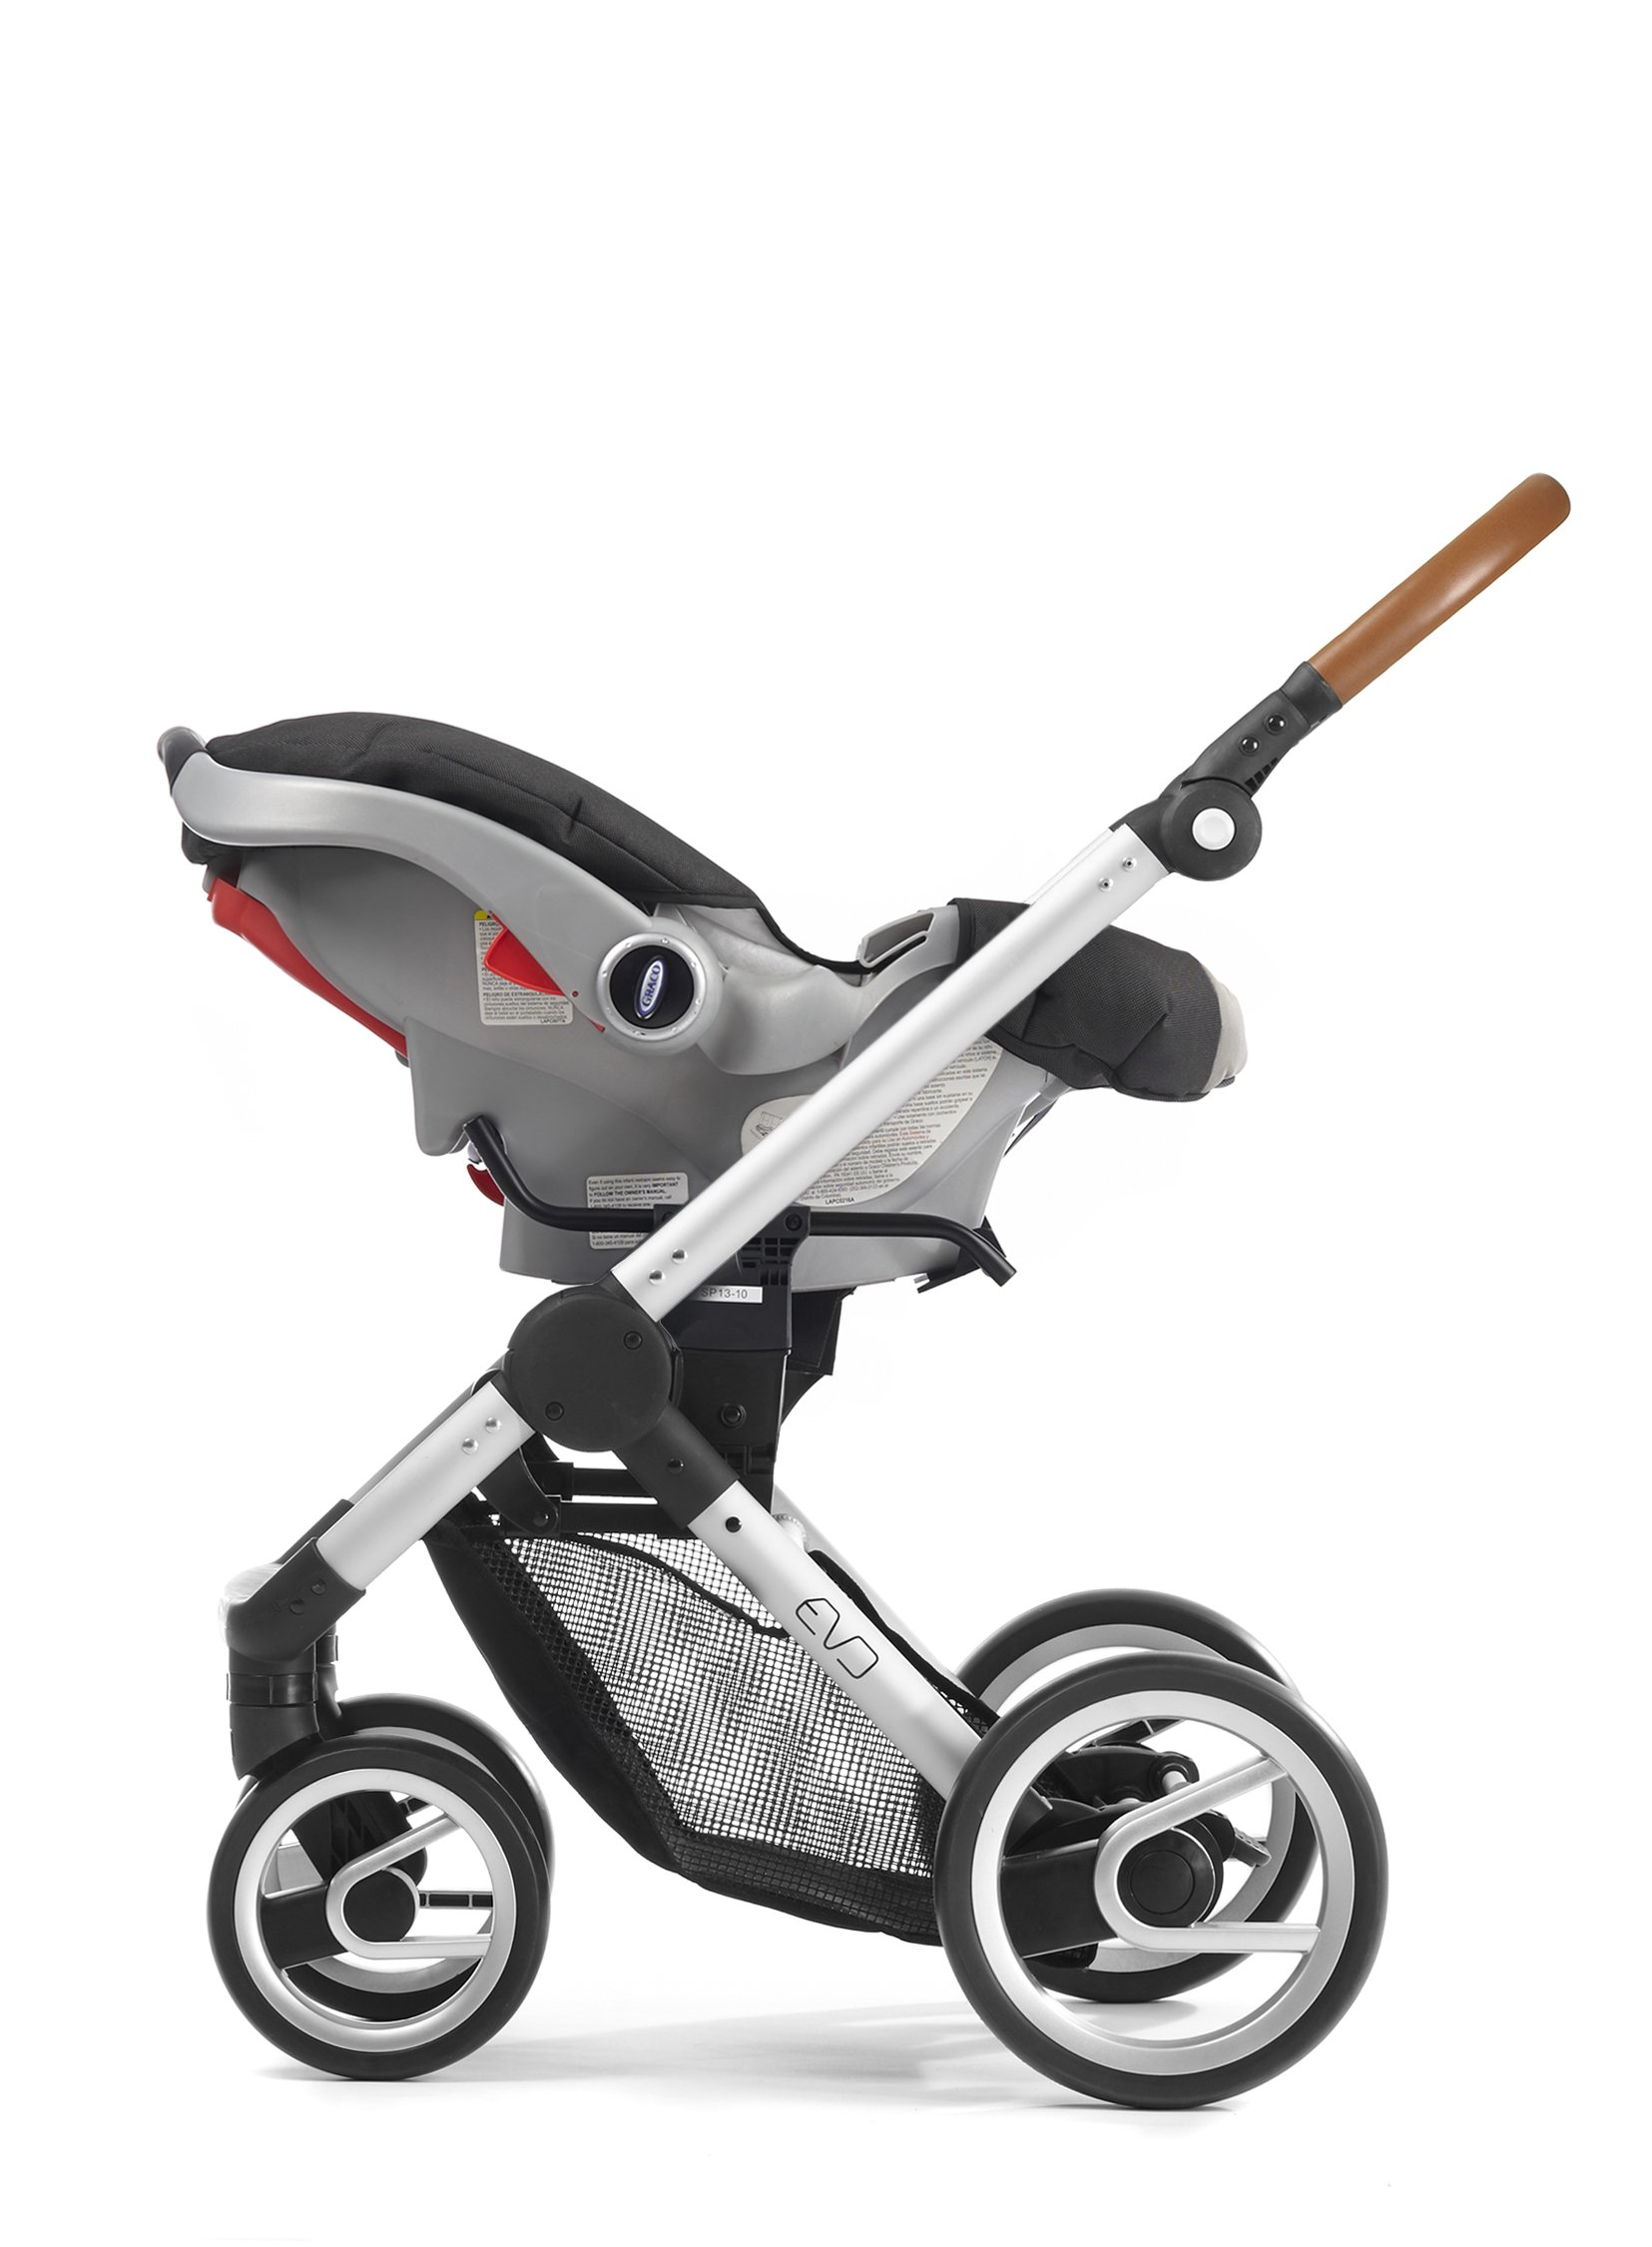 Mutsy Evo Industrial Edition Stroller, Grey with Silver Chassis by Mutsy (Image #4)